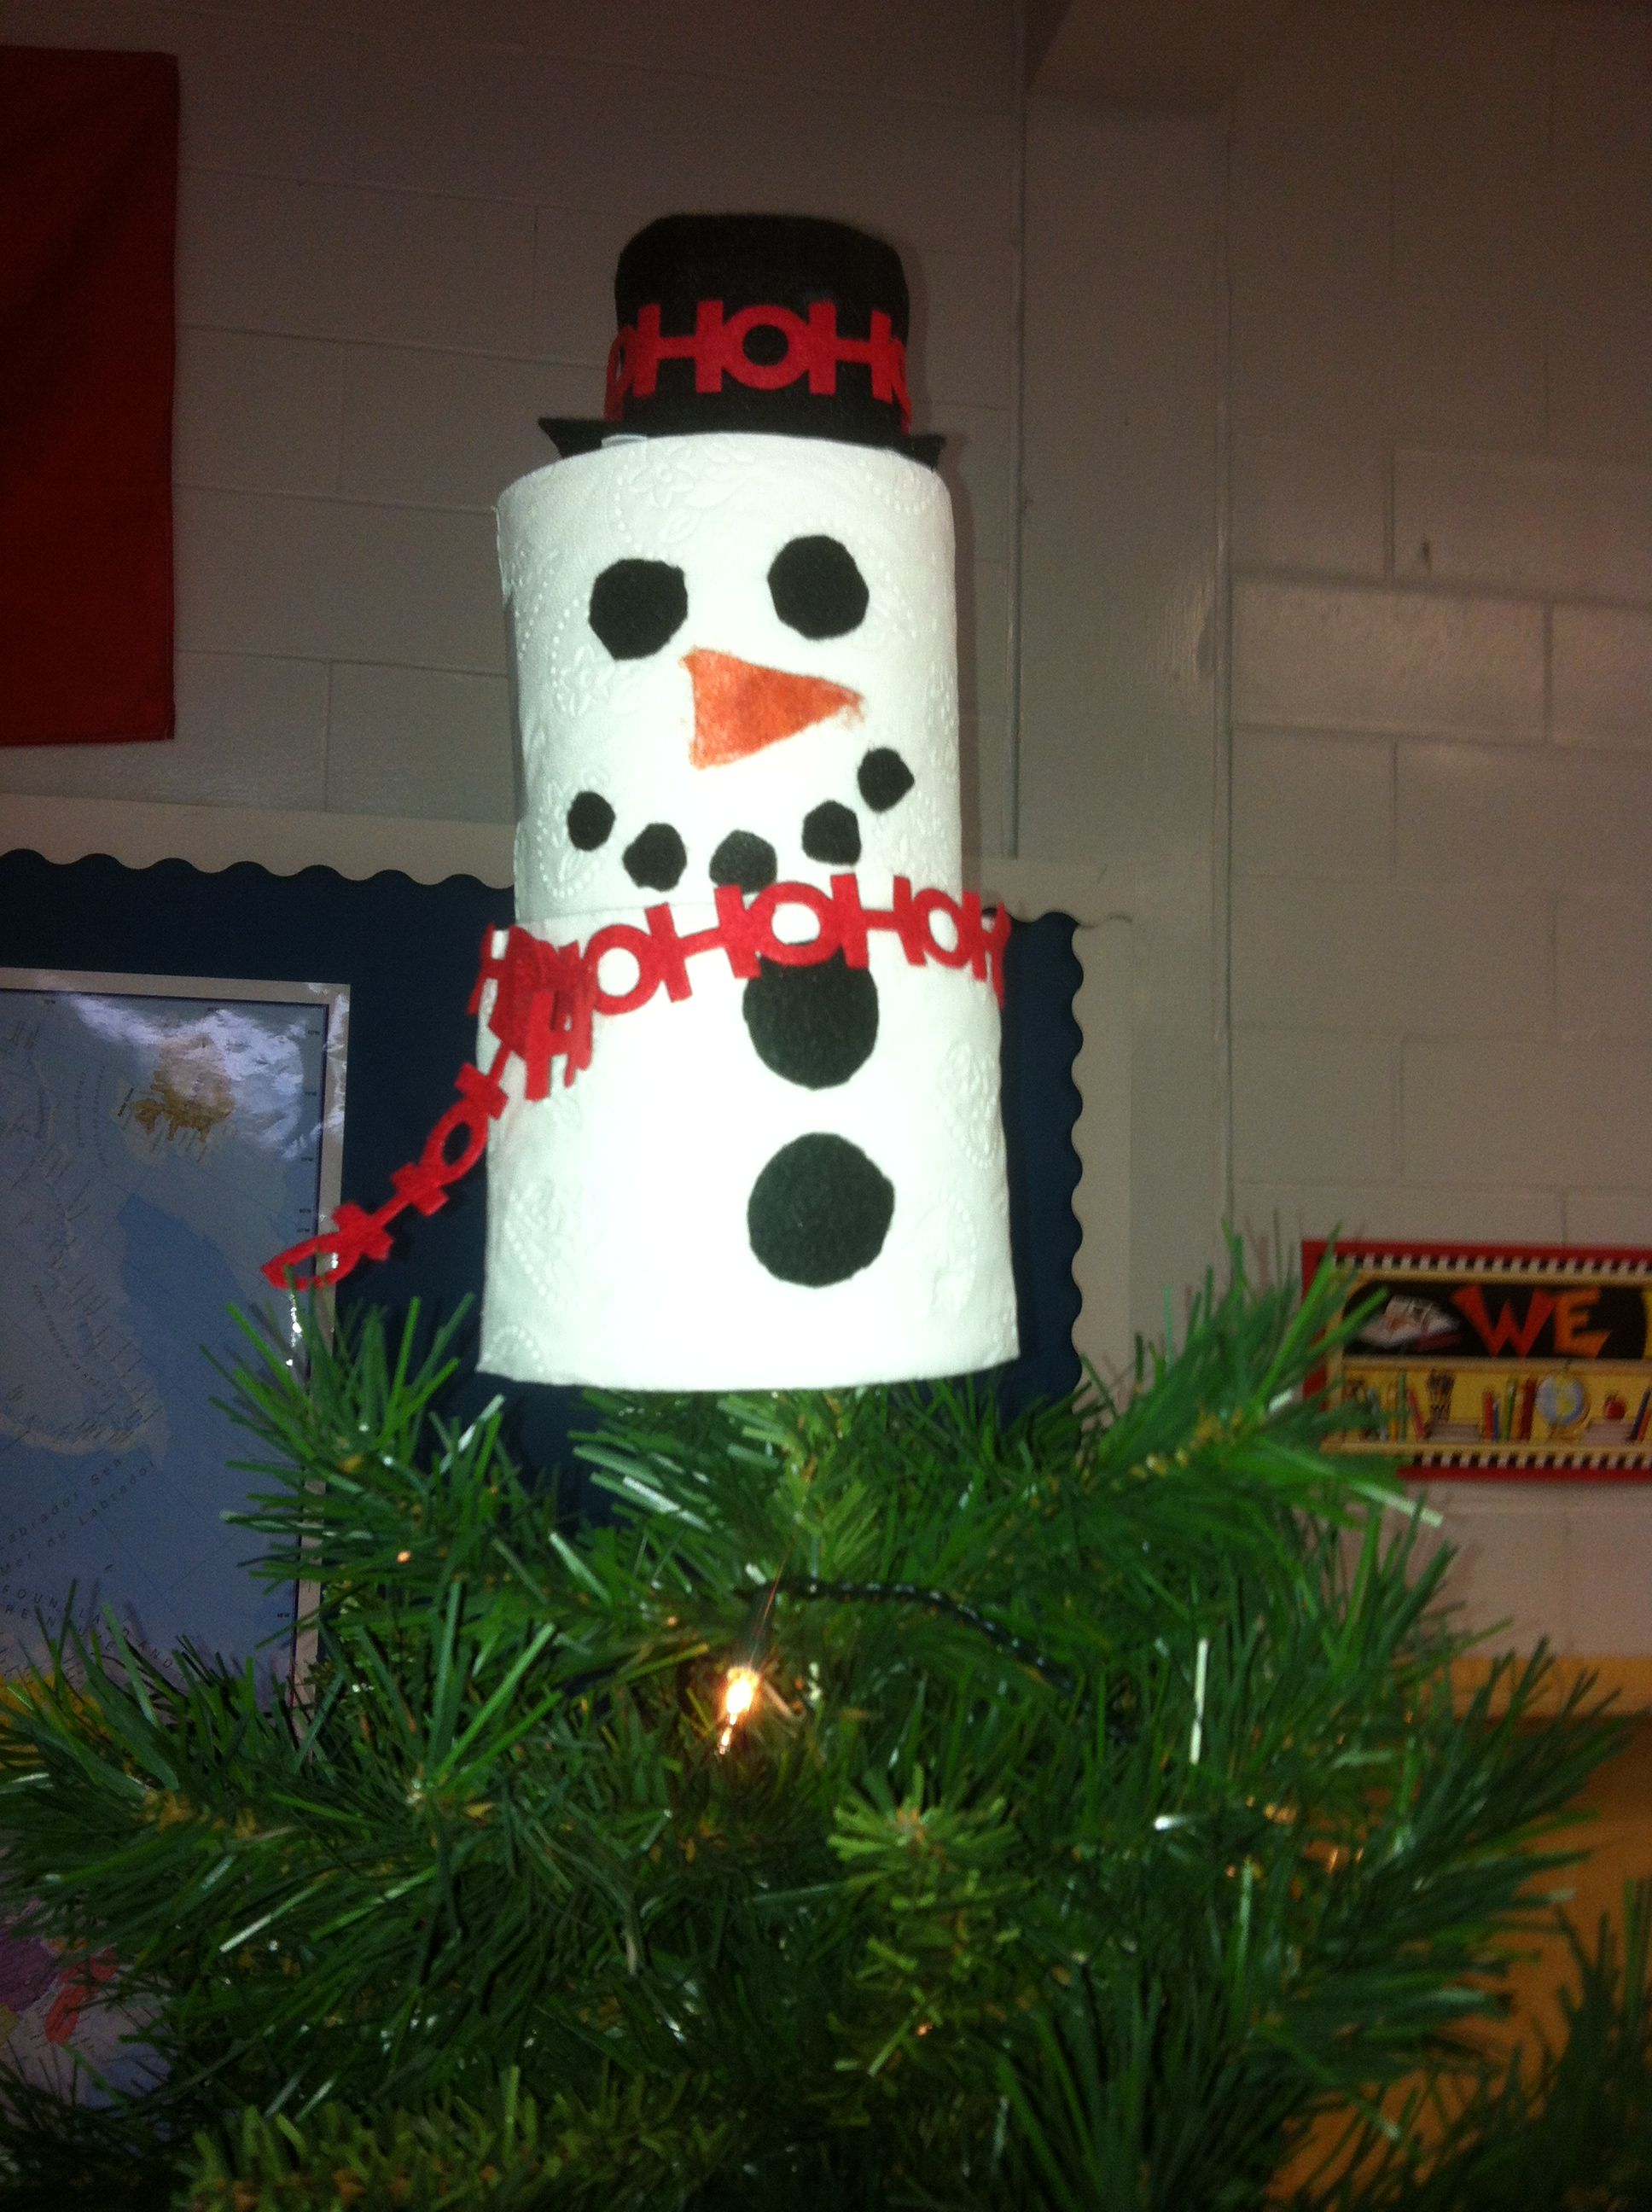 Snowman Tree Topper Made With Two Full Toilet Paper Rolls Body Empty Yogurt Cup Hat And Felt Accessori Tree Toppers Snowman Tree Topper Classroom Tree